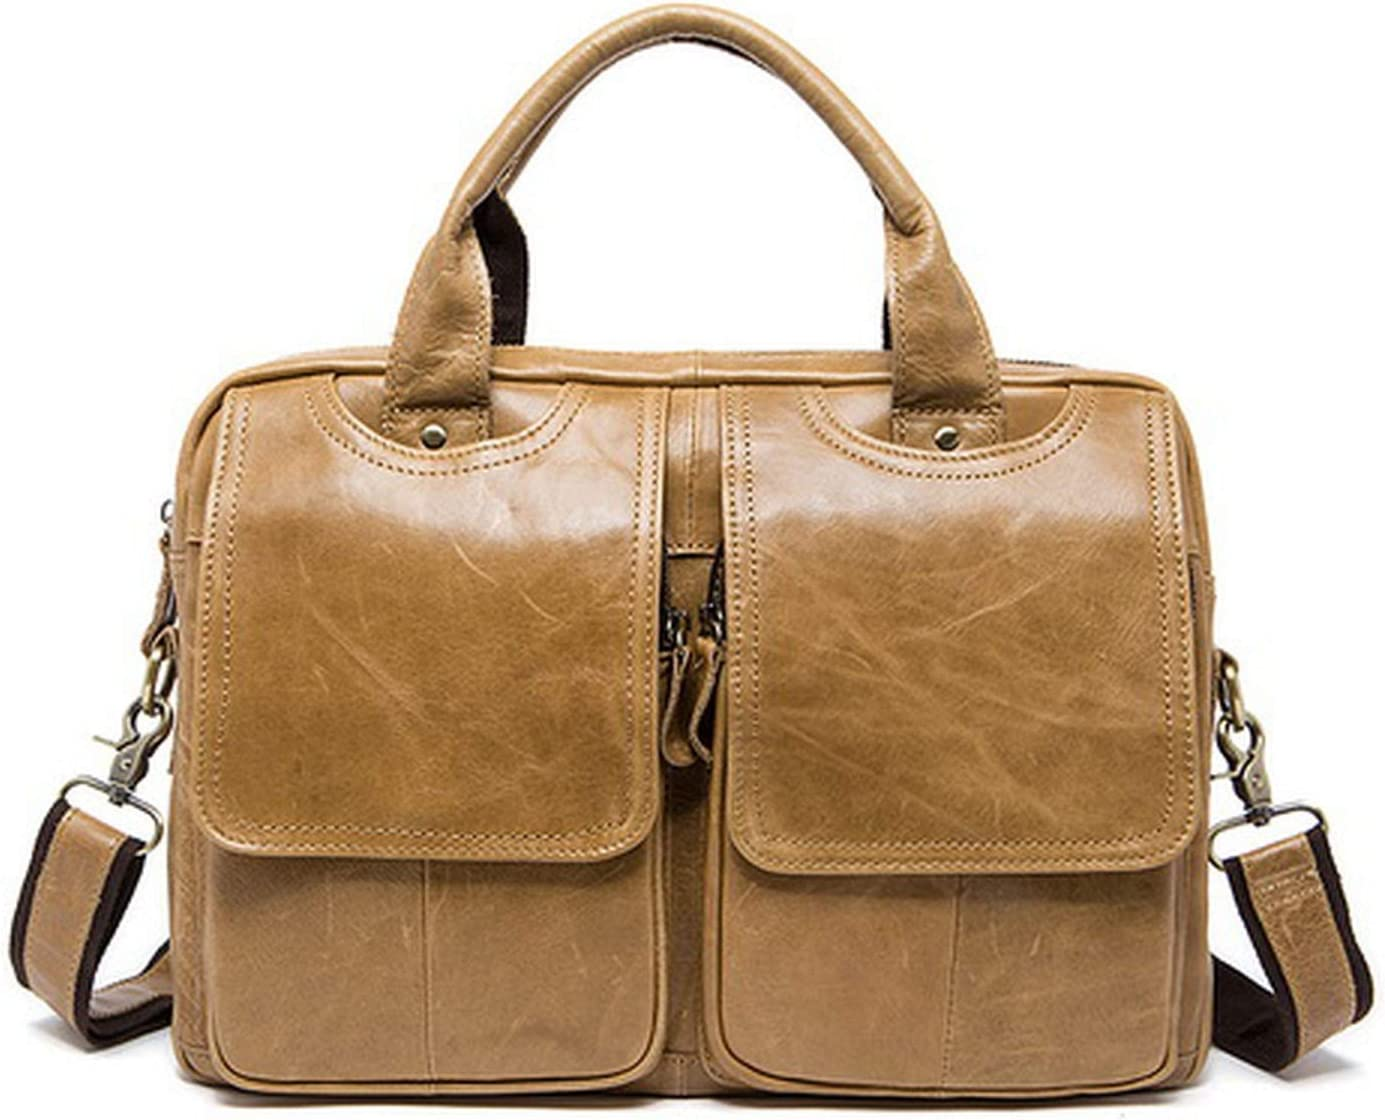 MenS Briefcase Bag MenS Genuine Leather Bags Male Man 14Inch Business Laptop Bag For Men Briefcases Leather Bags,8002Yellowbrown